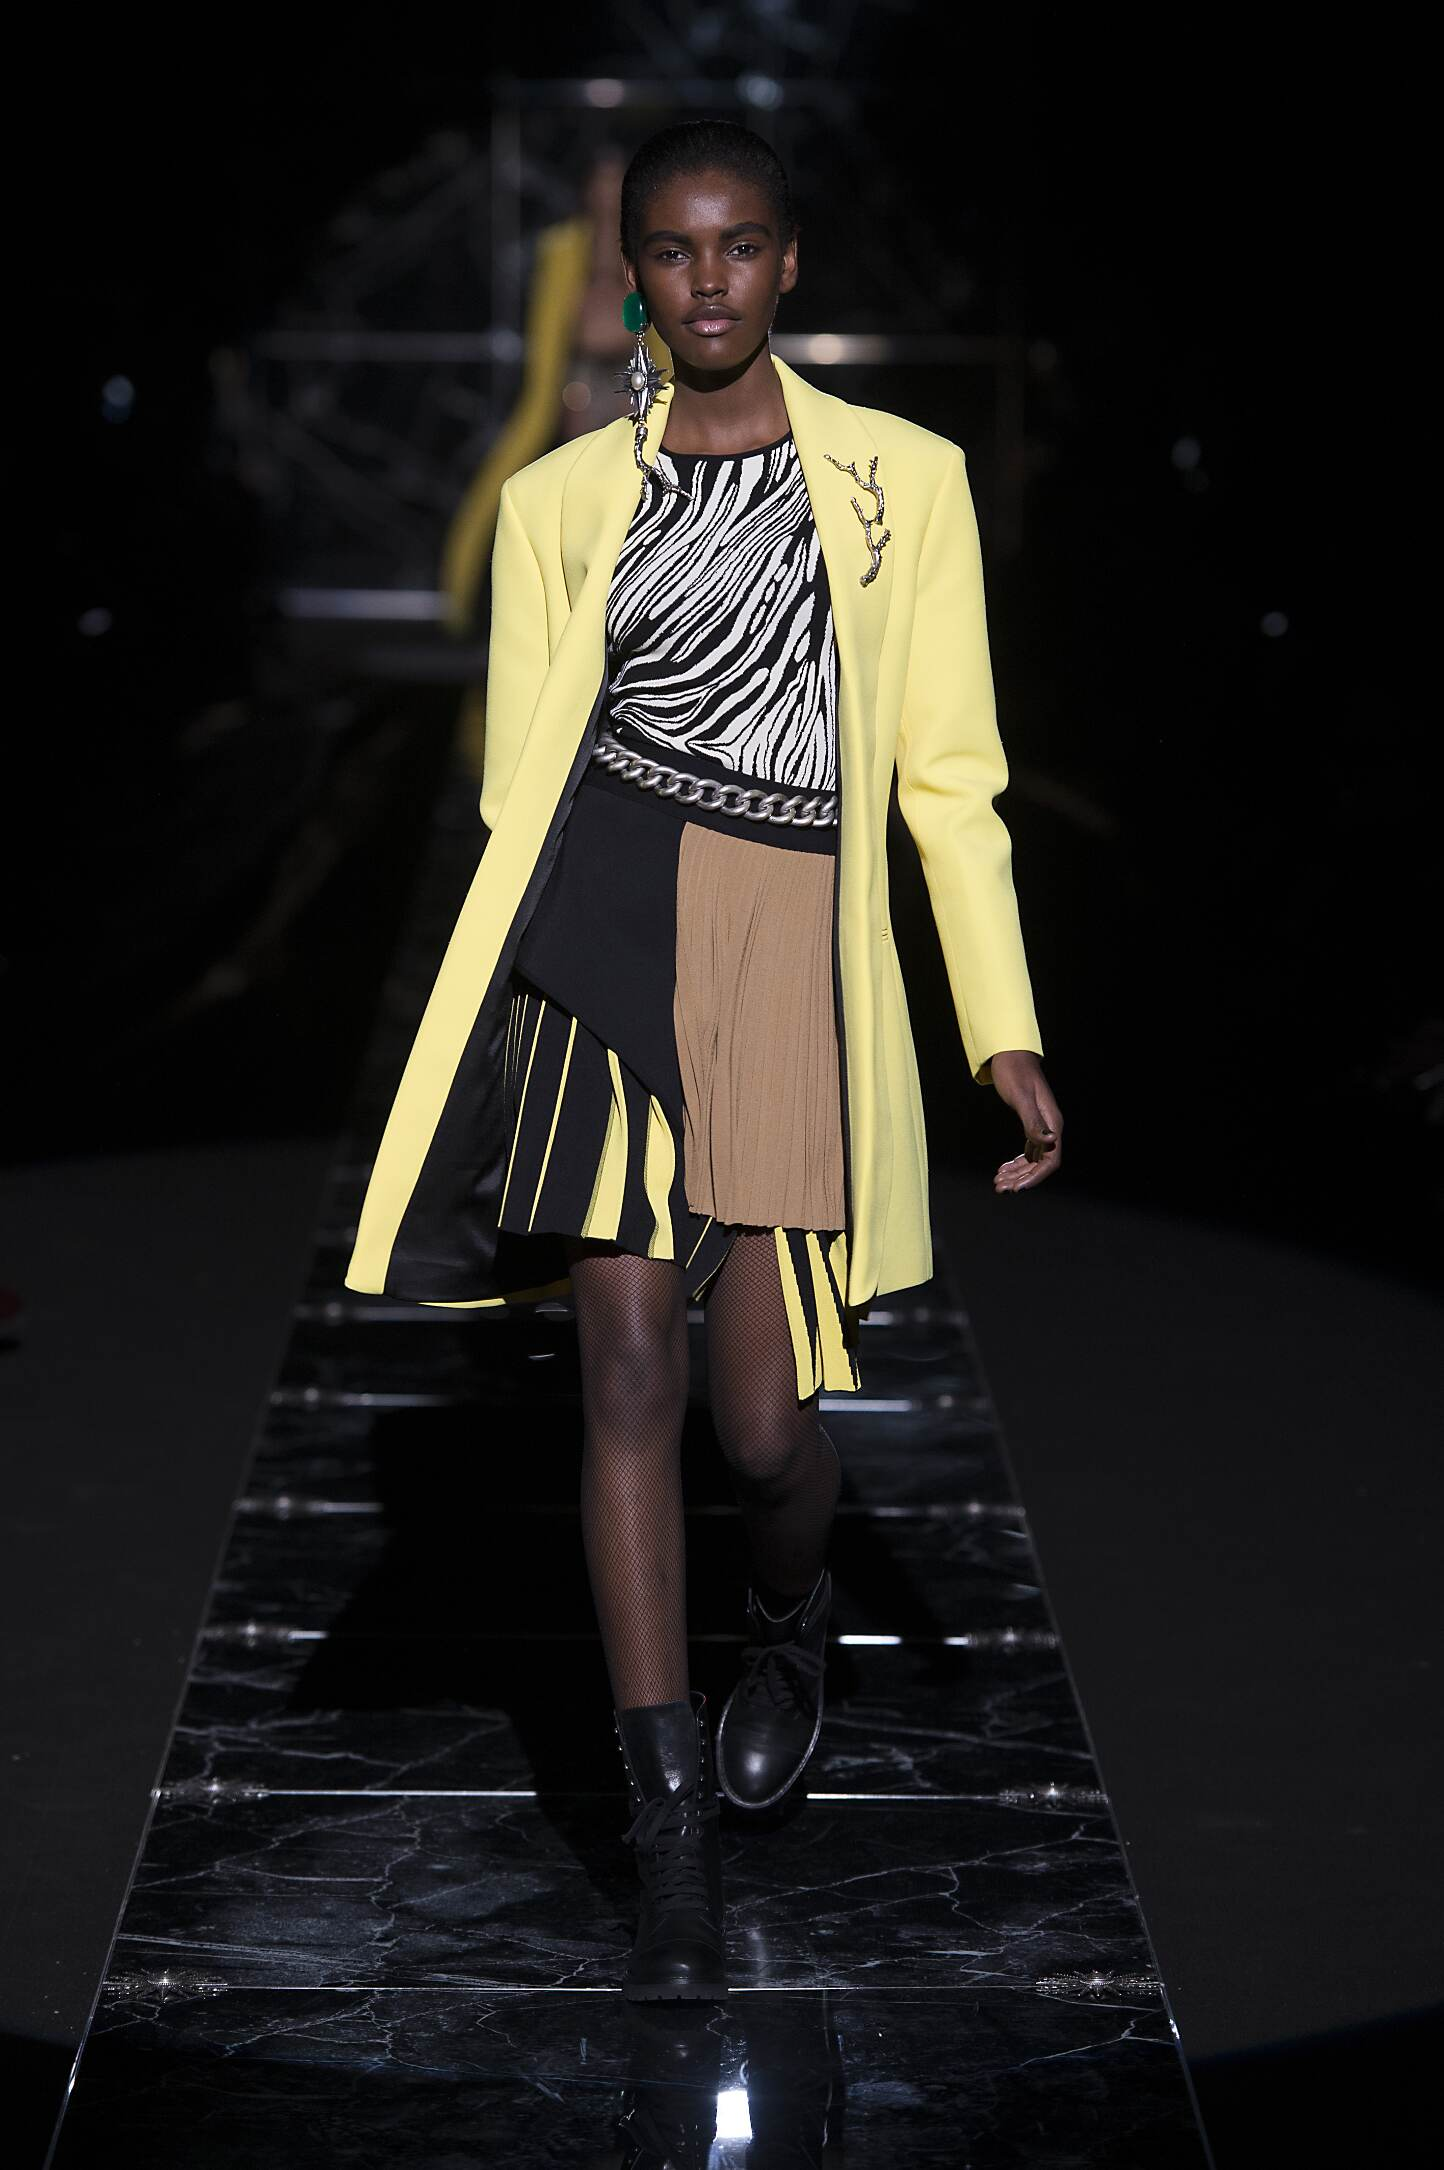 2015 Fashion Woman Model Fausto Puglisi Collection Catwalk